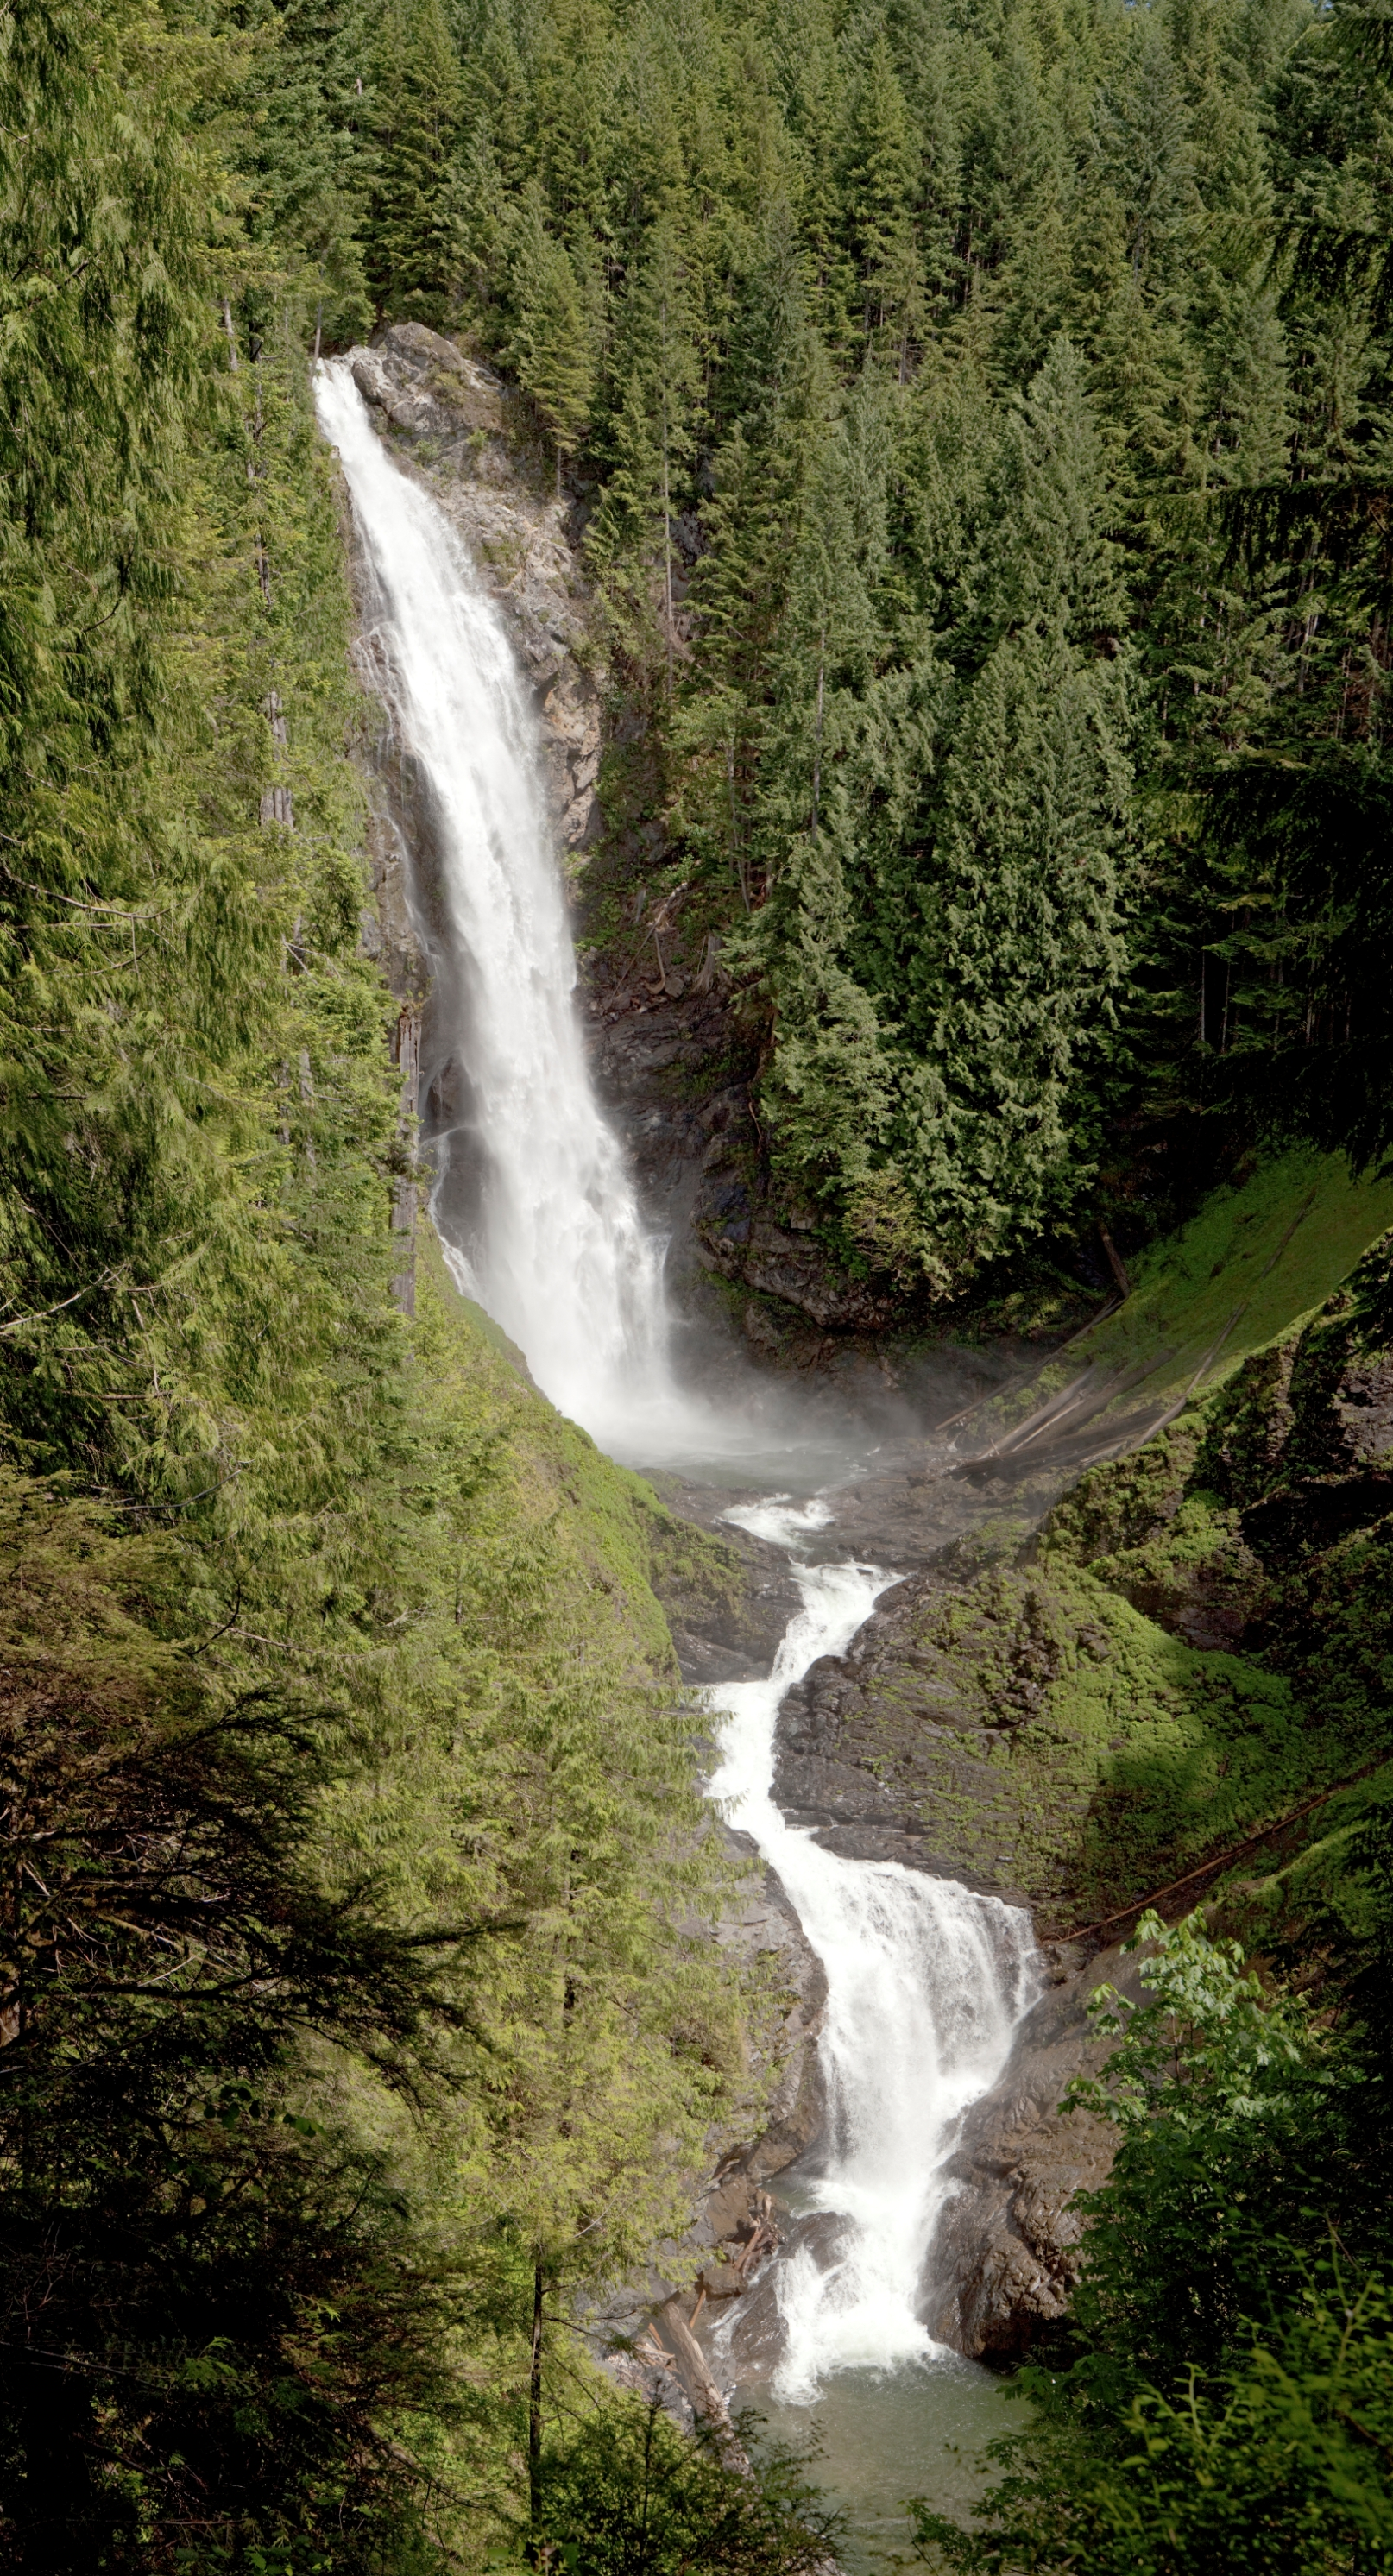 Overview of Wallace Falls in its entirety